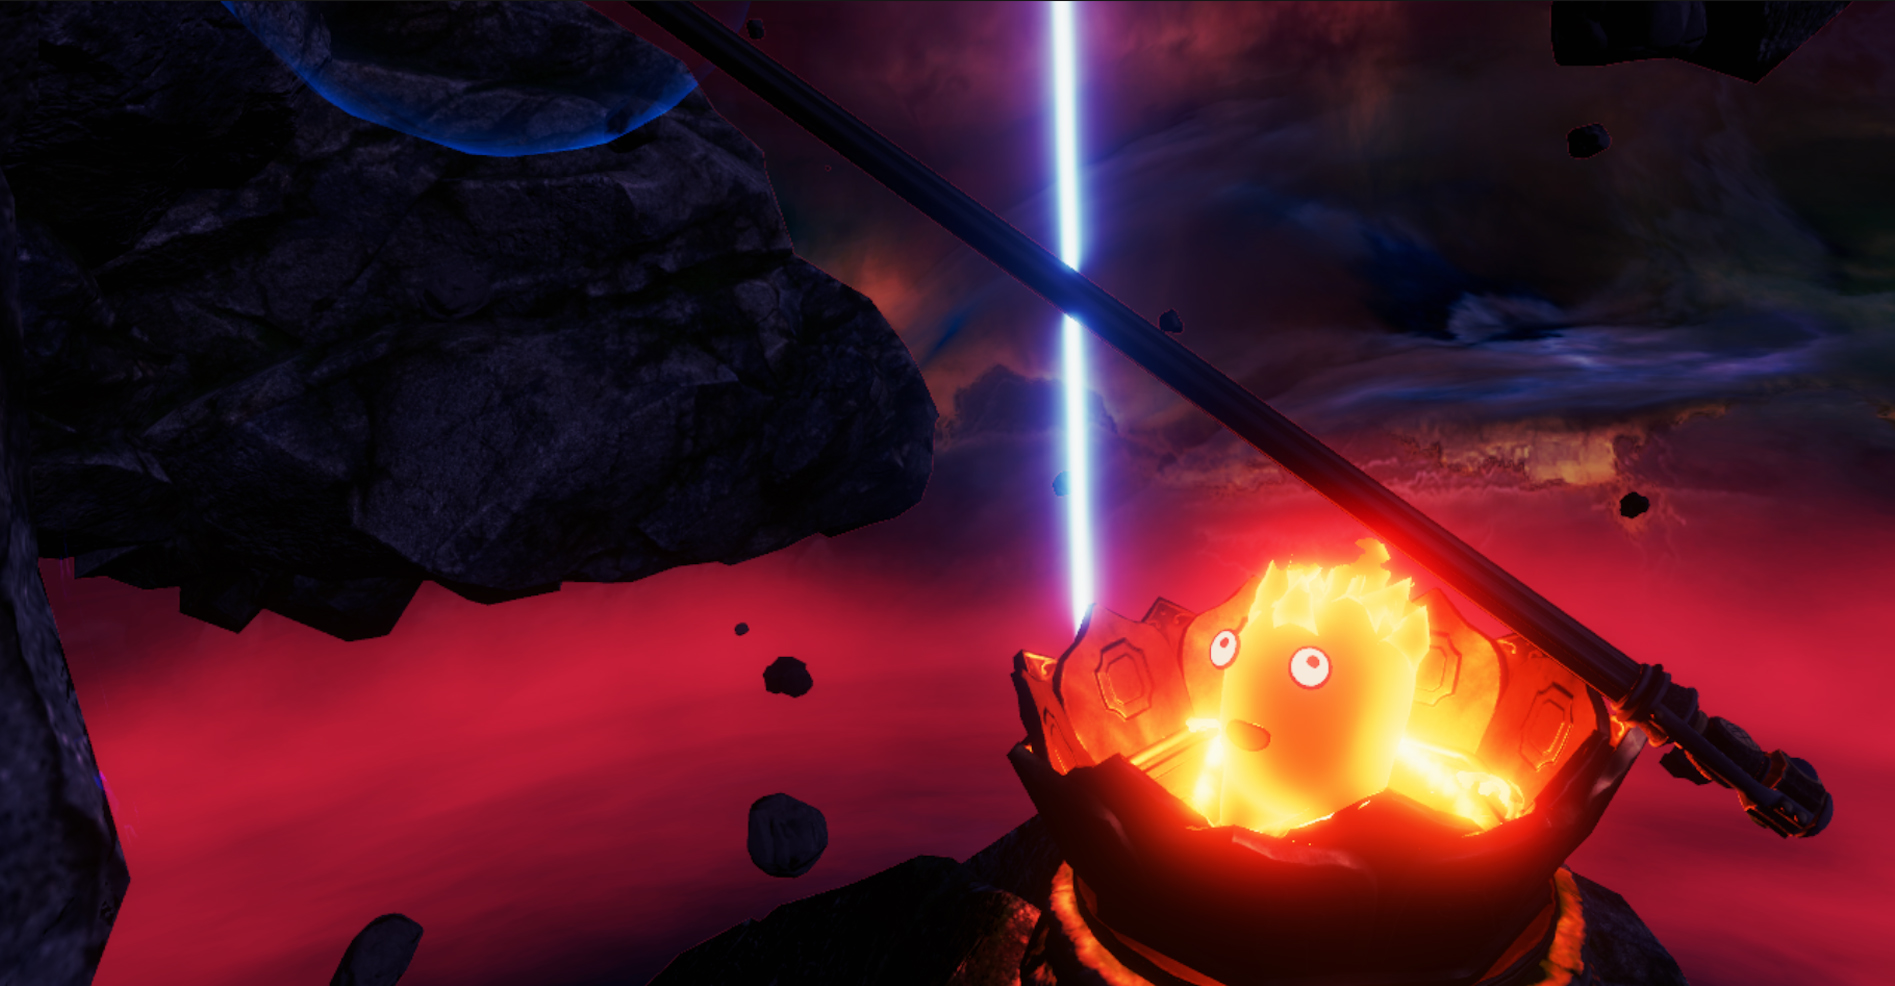 twilight-path-from-charm-games5-releases-on-steam-vr-and-the-oculus-store-frikigamers.com.jpg